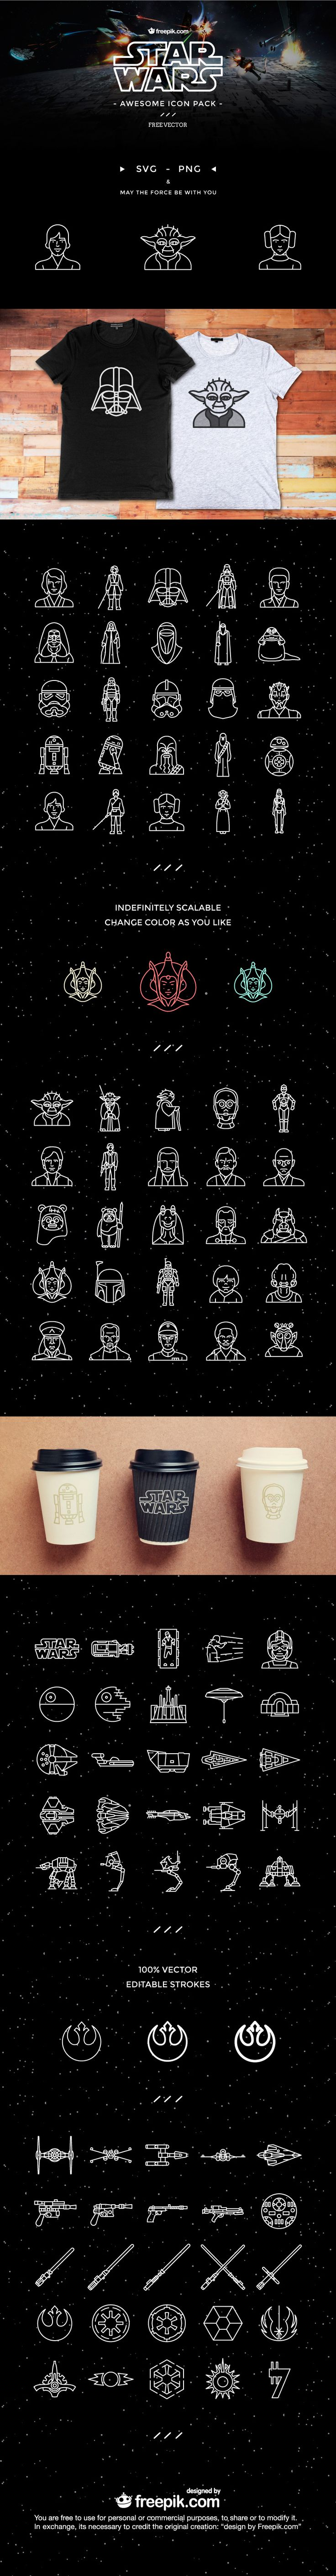 les 9 meilleures images du tableau star wars sur pinterest star wars illustrations de star. Black Bedroom Furniture Sets. Home Design Ideas